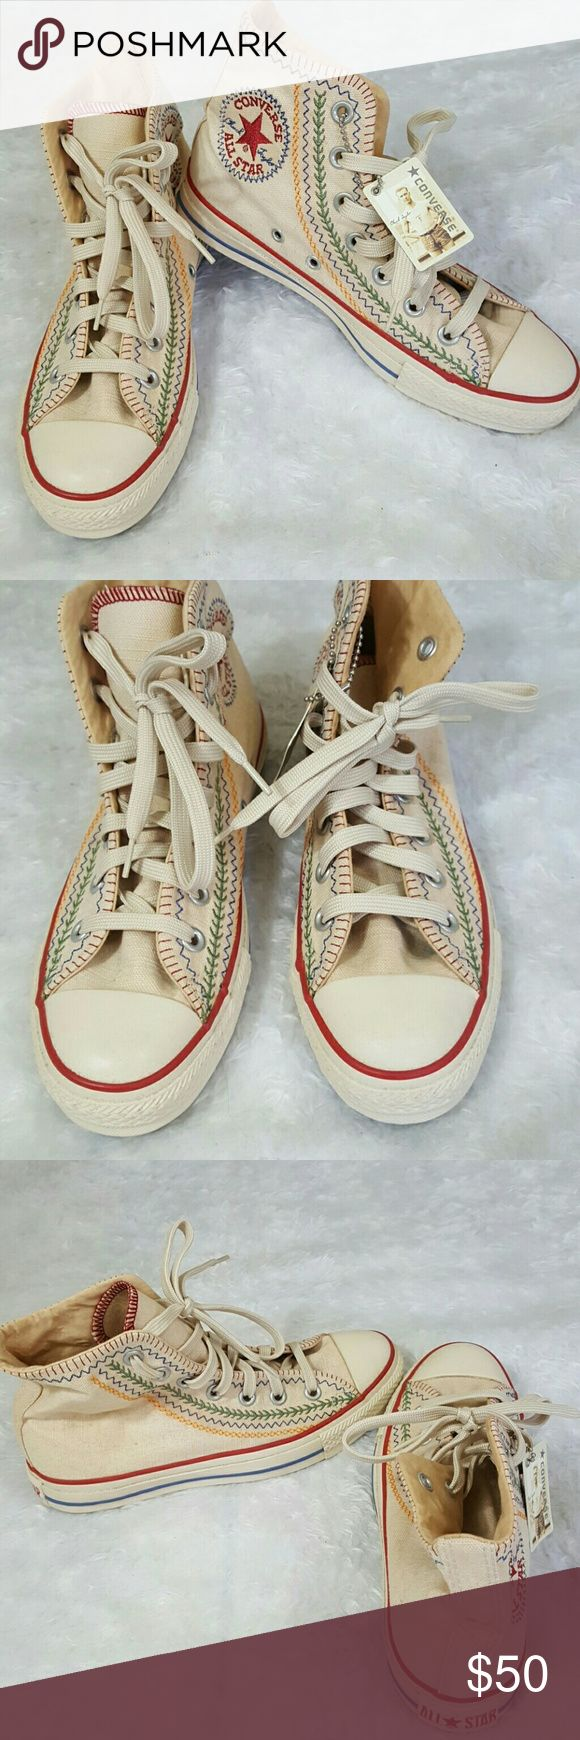 NWT!  Converse Allstars high top sneakers Brand new never worn Adorable high tops, love these!!  Embroidery and stitching on cream colored canvas, super cute! Converse Shoes Athletic Shoes